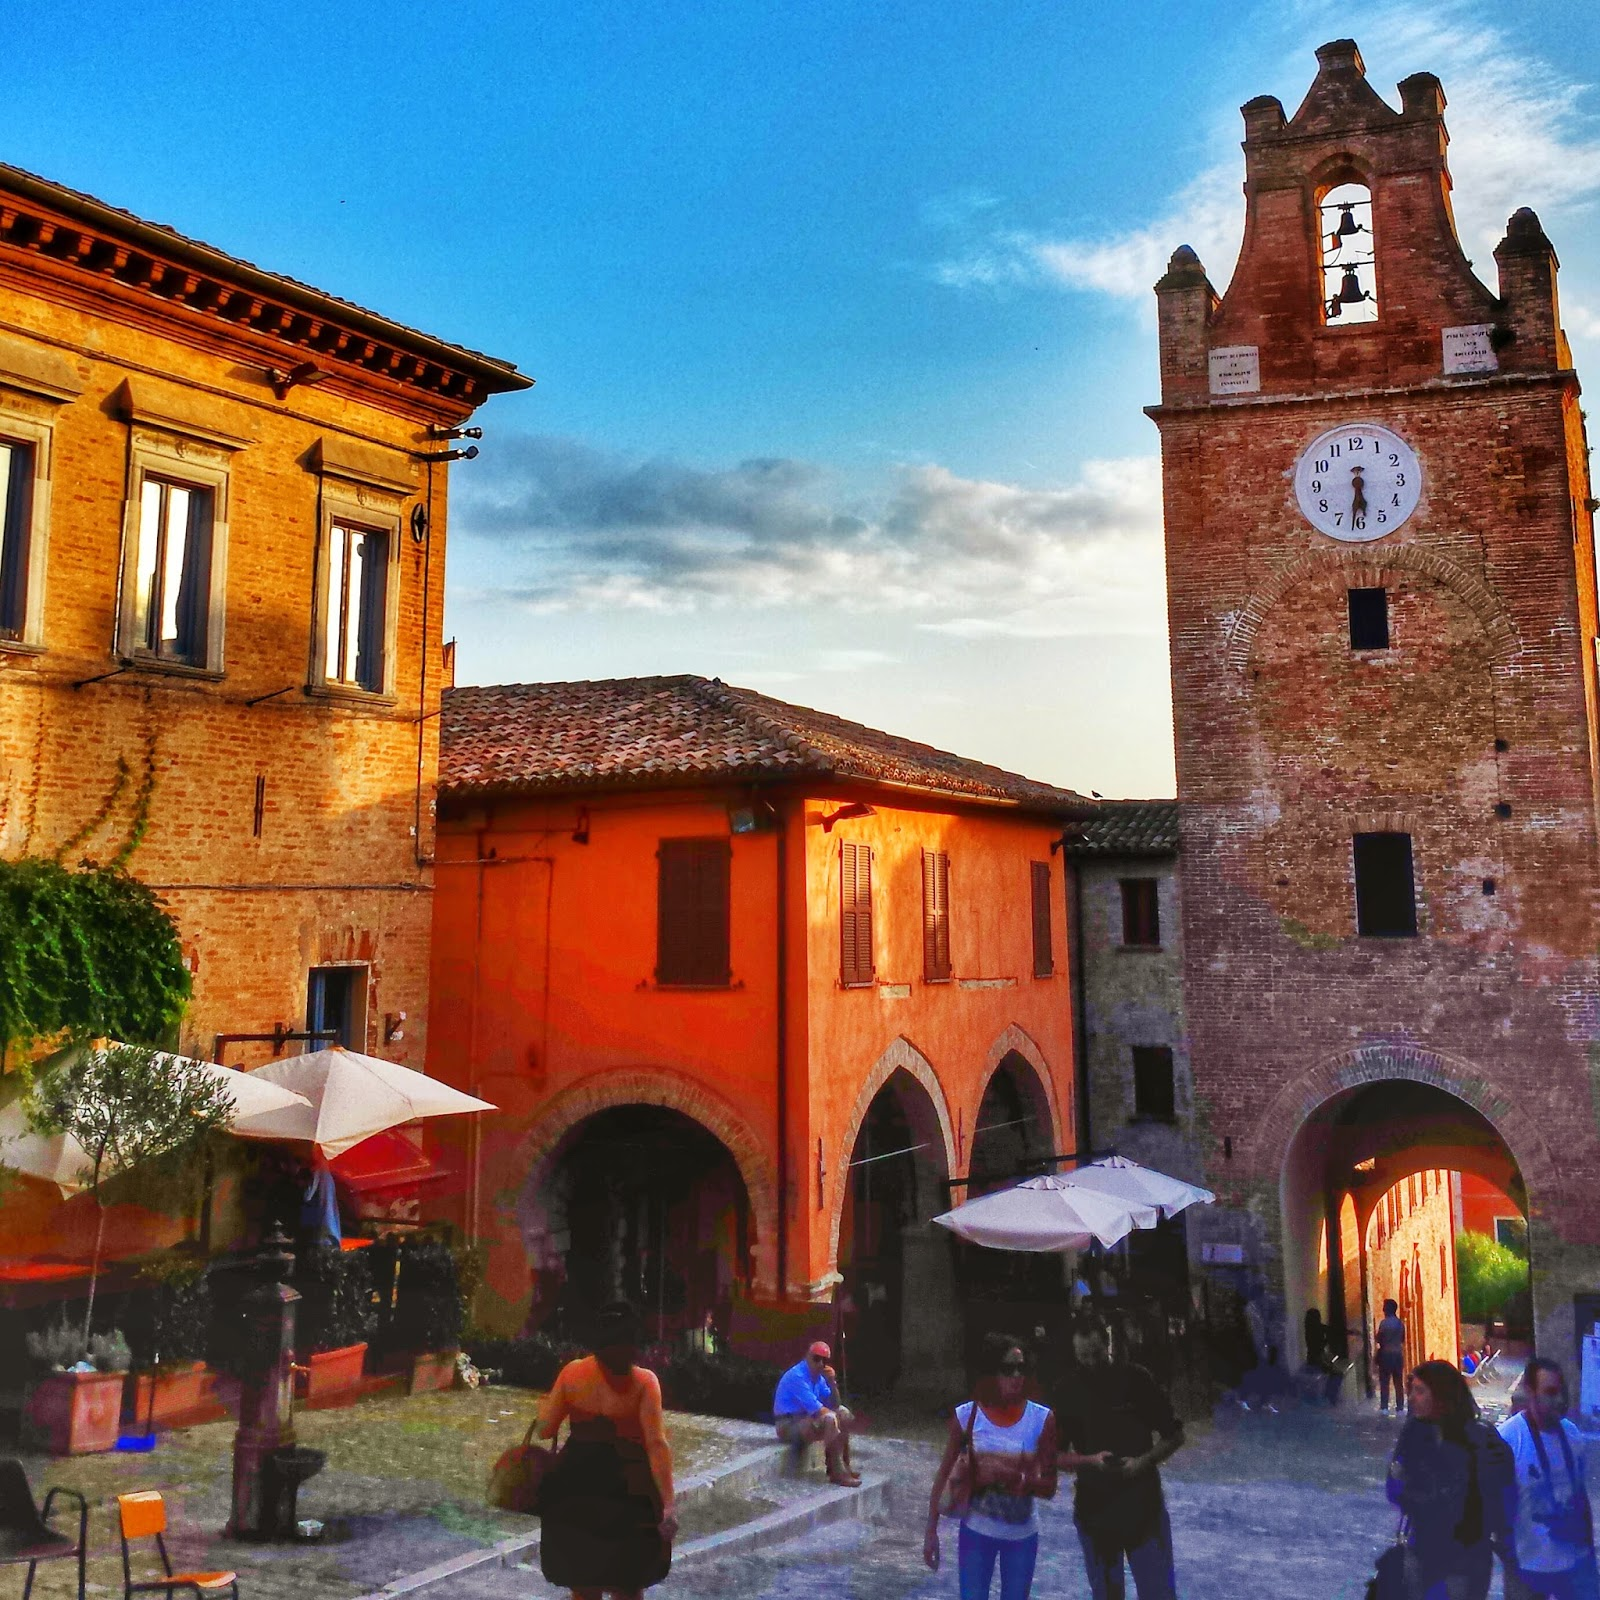 Gradara, Italy: 10 Destination Photos on Instagram that Make You Want to Travel